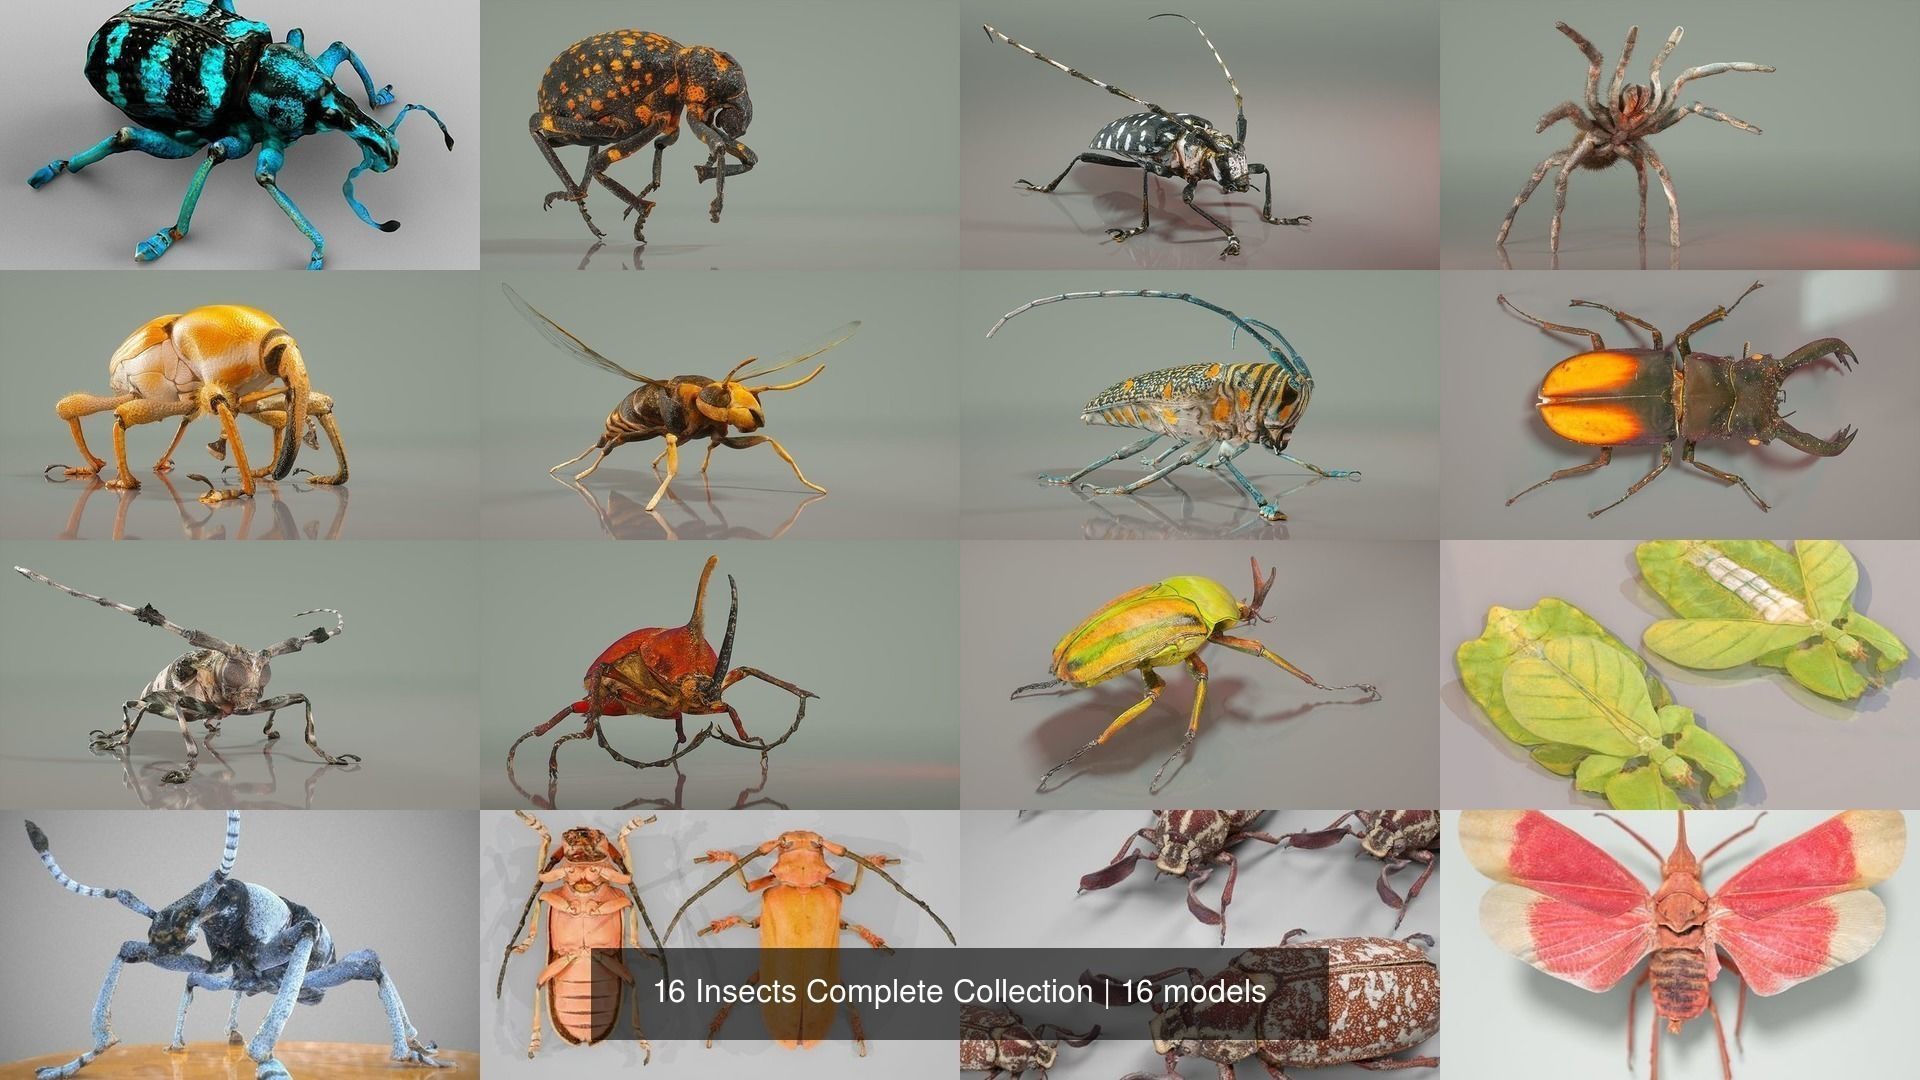 16 Insects Complete Collection